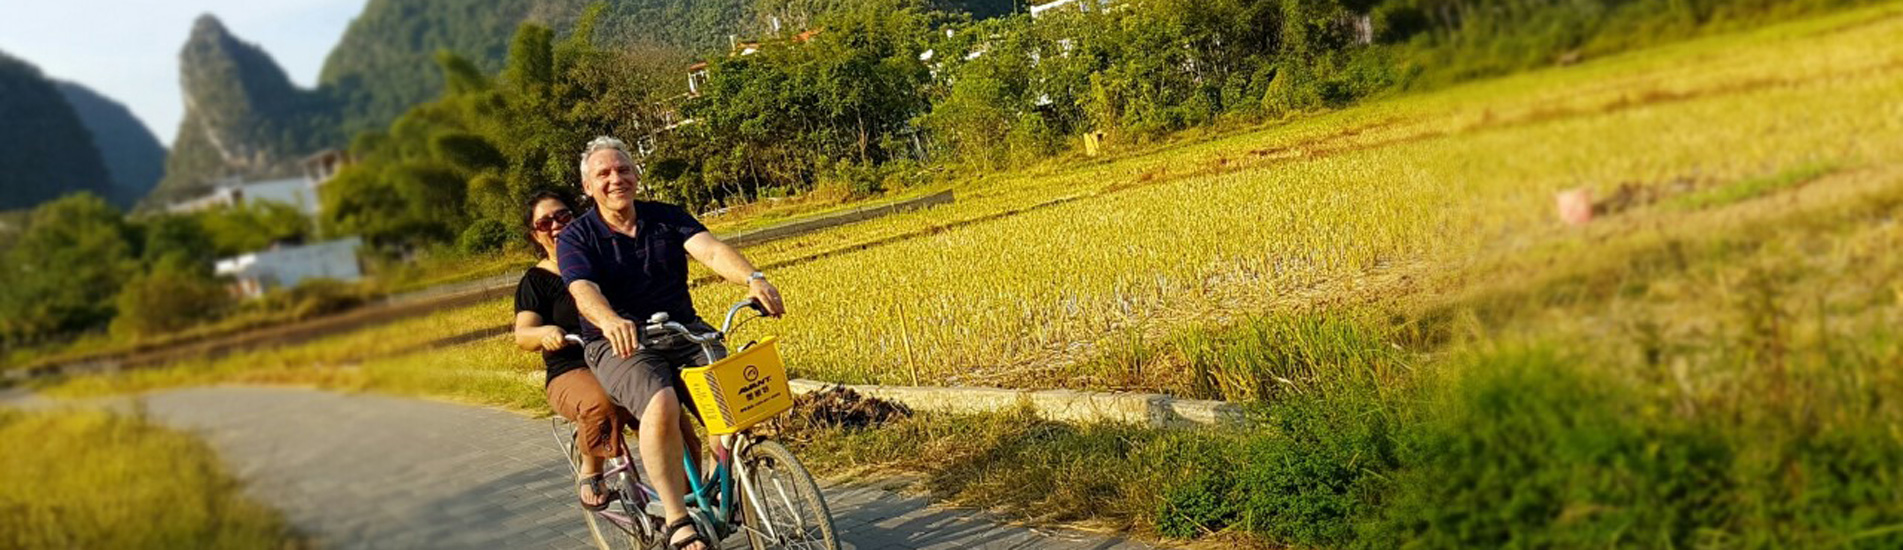 Biking at the countryside of Yangshuo